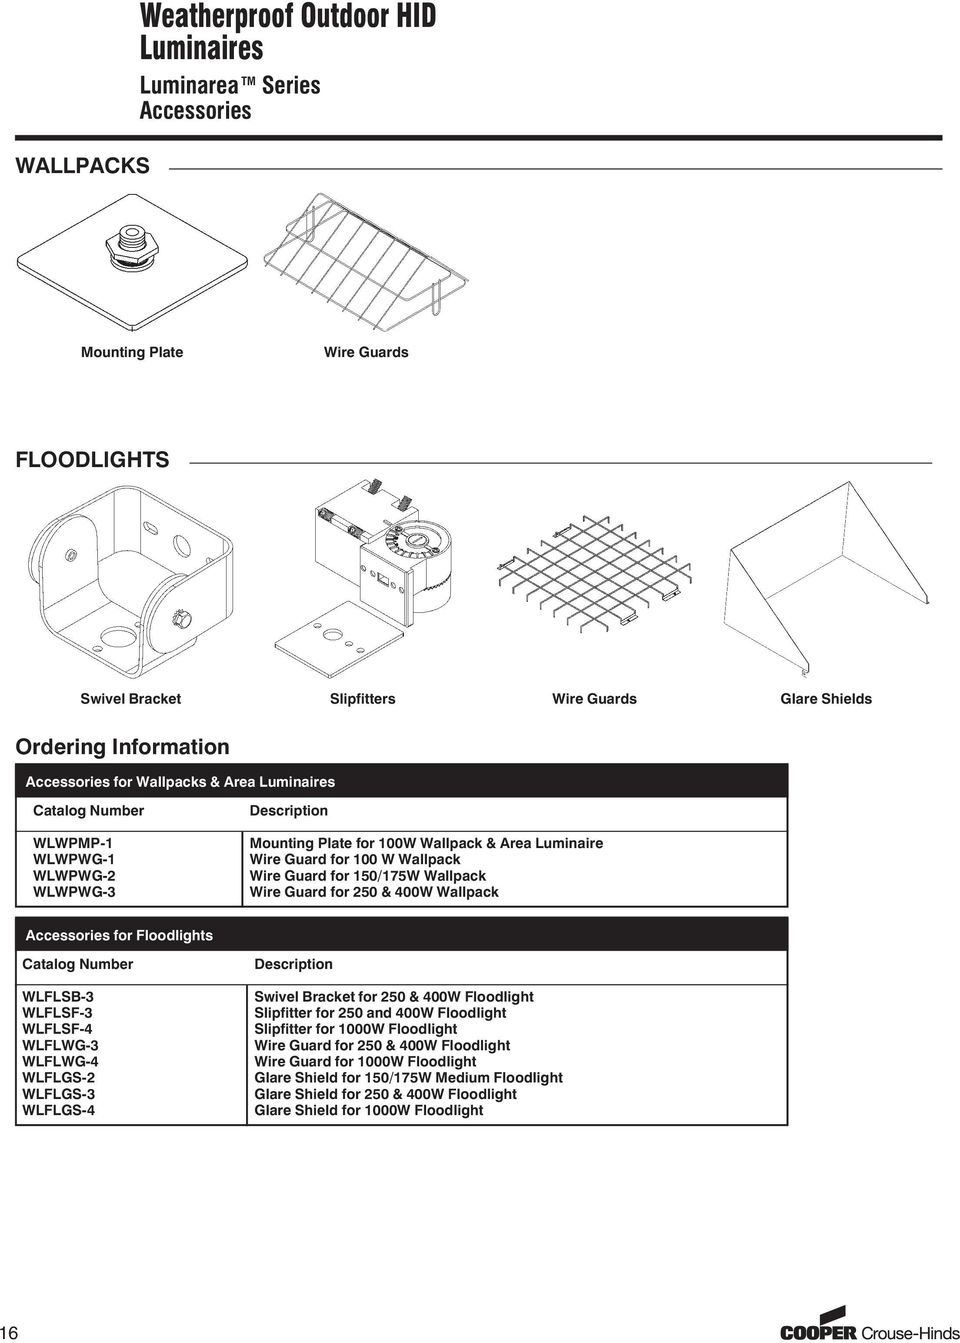 for 150/175W Wallpack Wire Guard for 250 & 400W Wallpack Accessories for  Floodlights Catalog